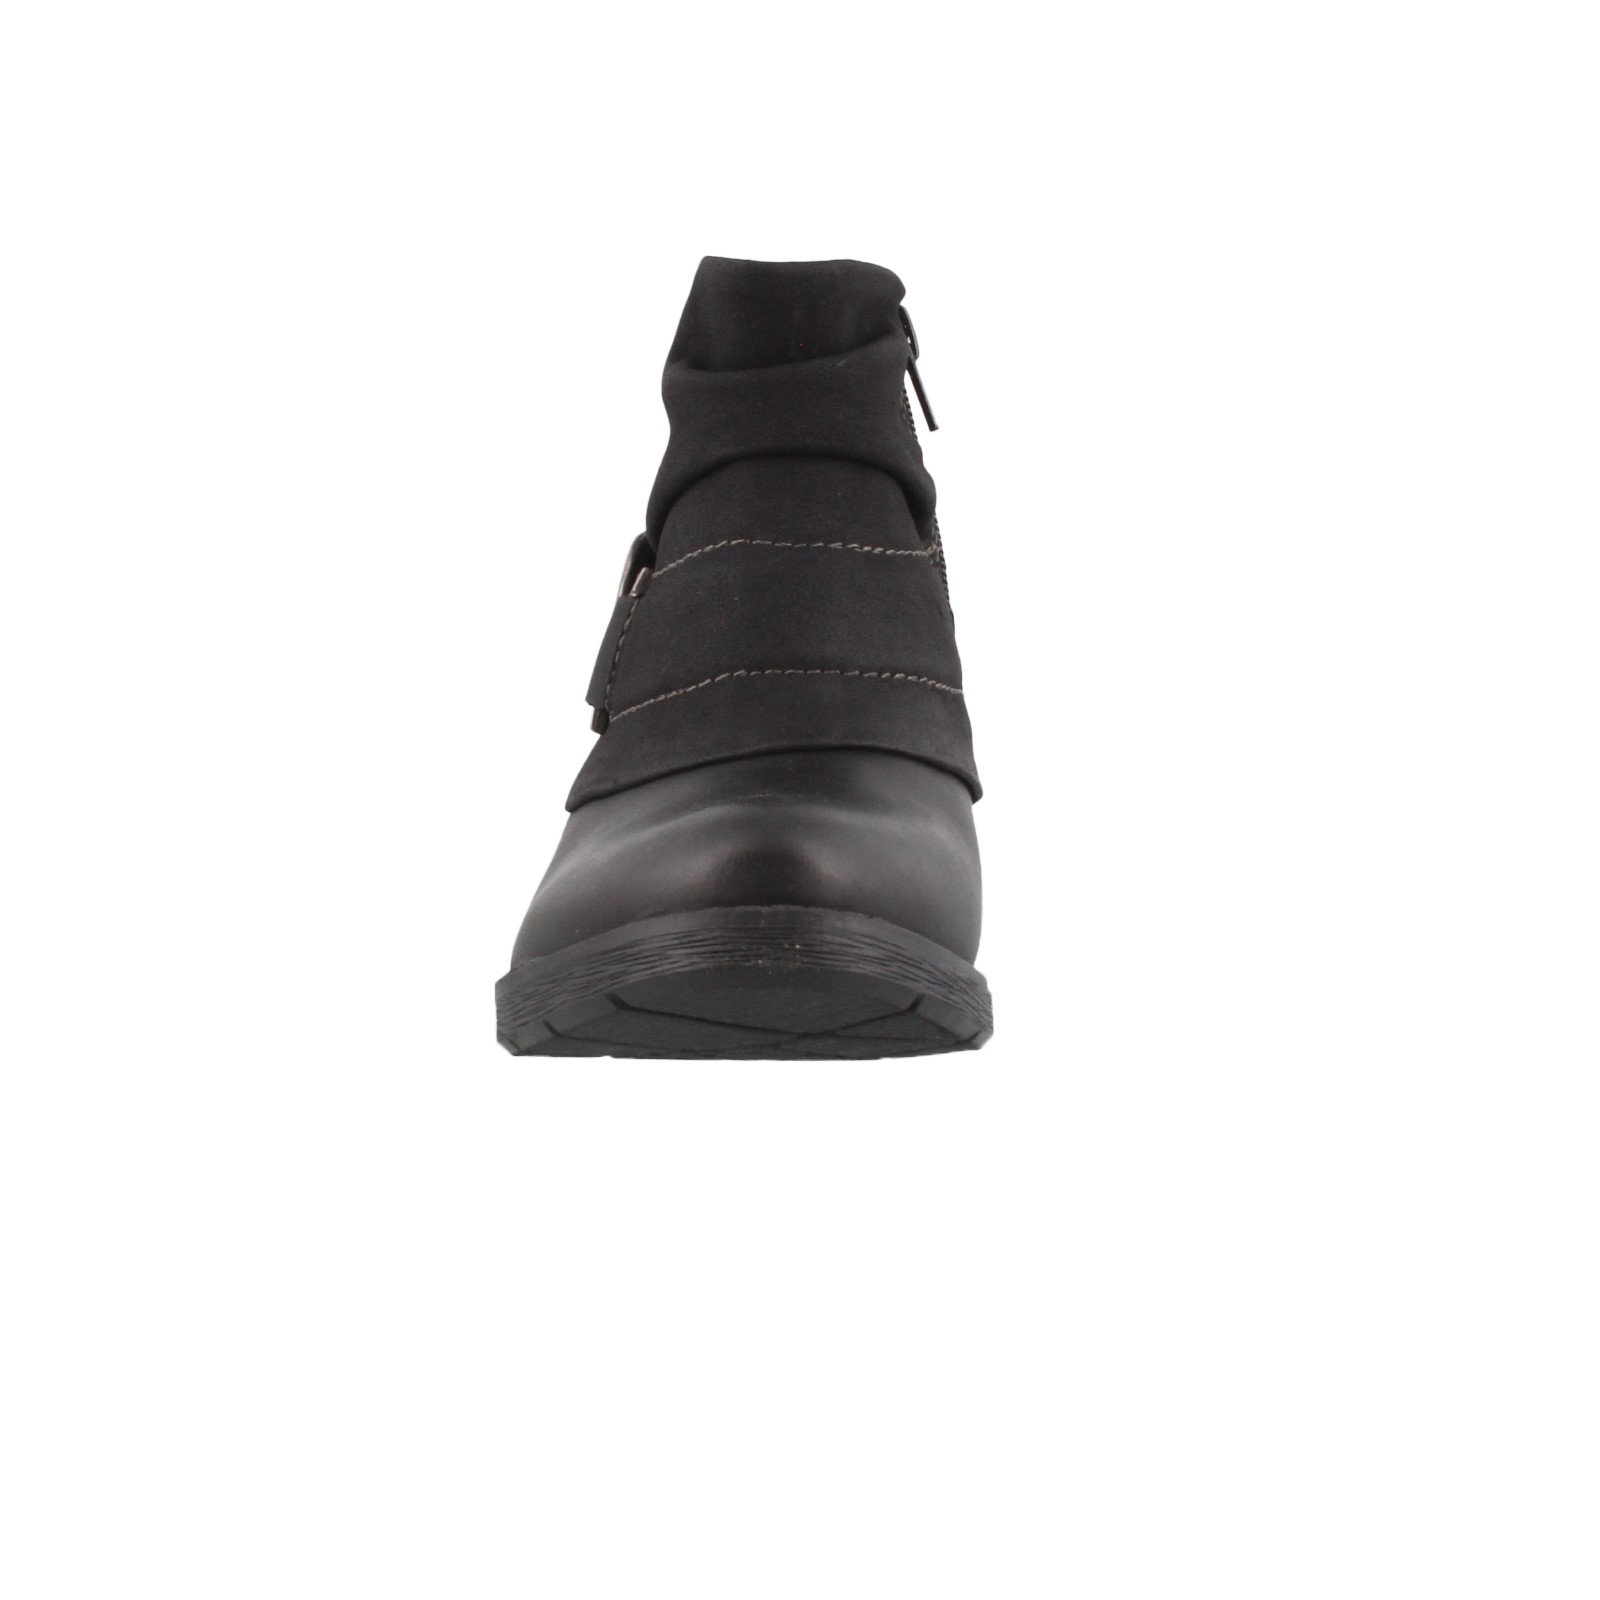 d65cafe71 Next. add to favorites. Women's Earth Origins, Nessa Ankle Boot